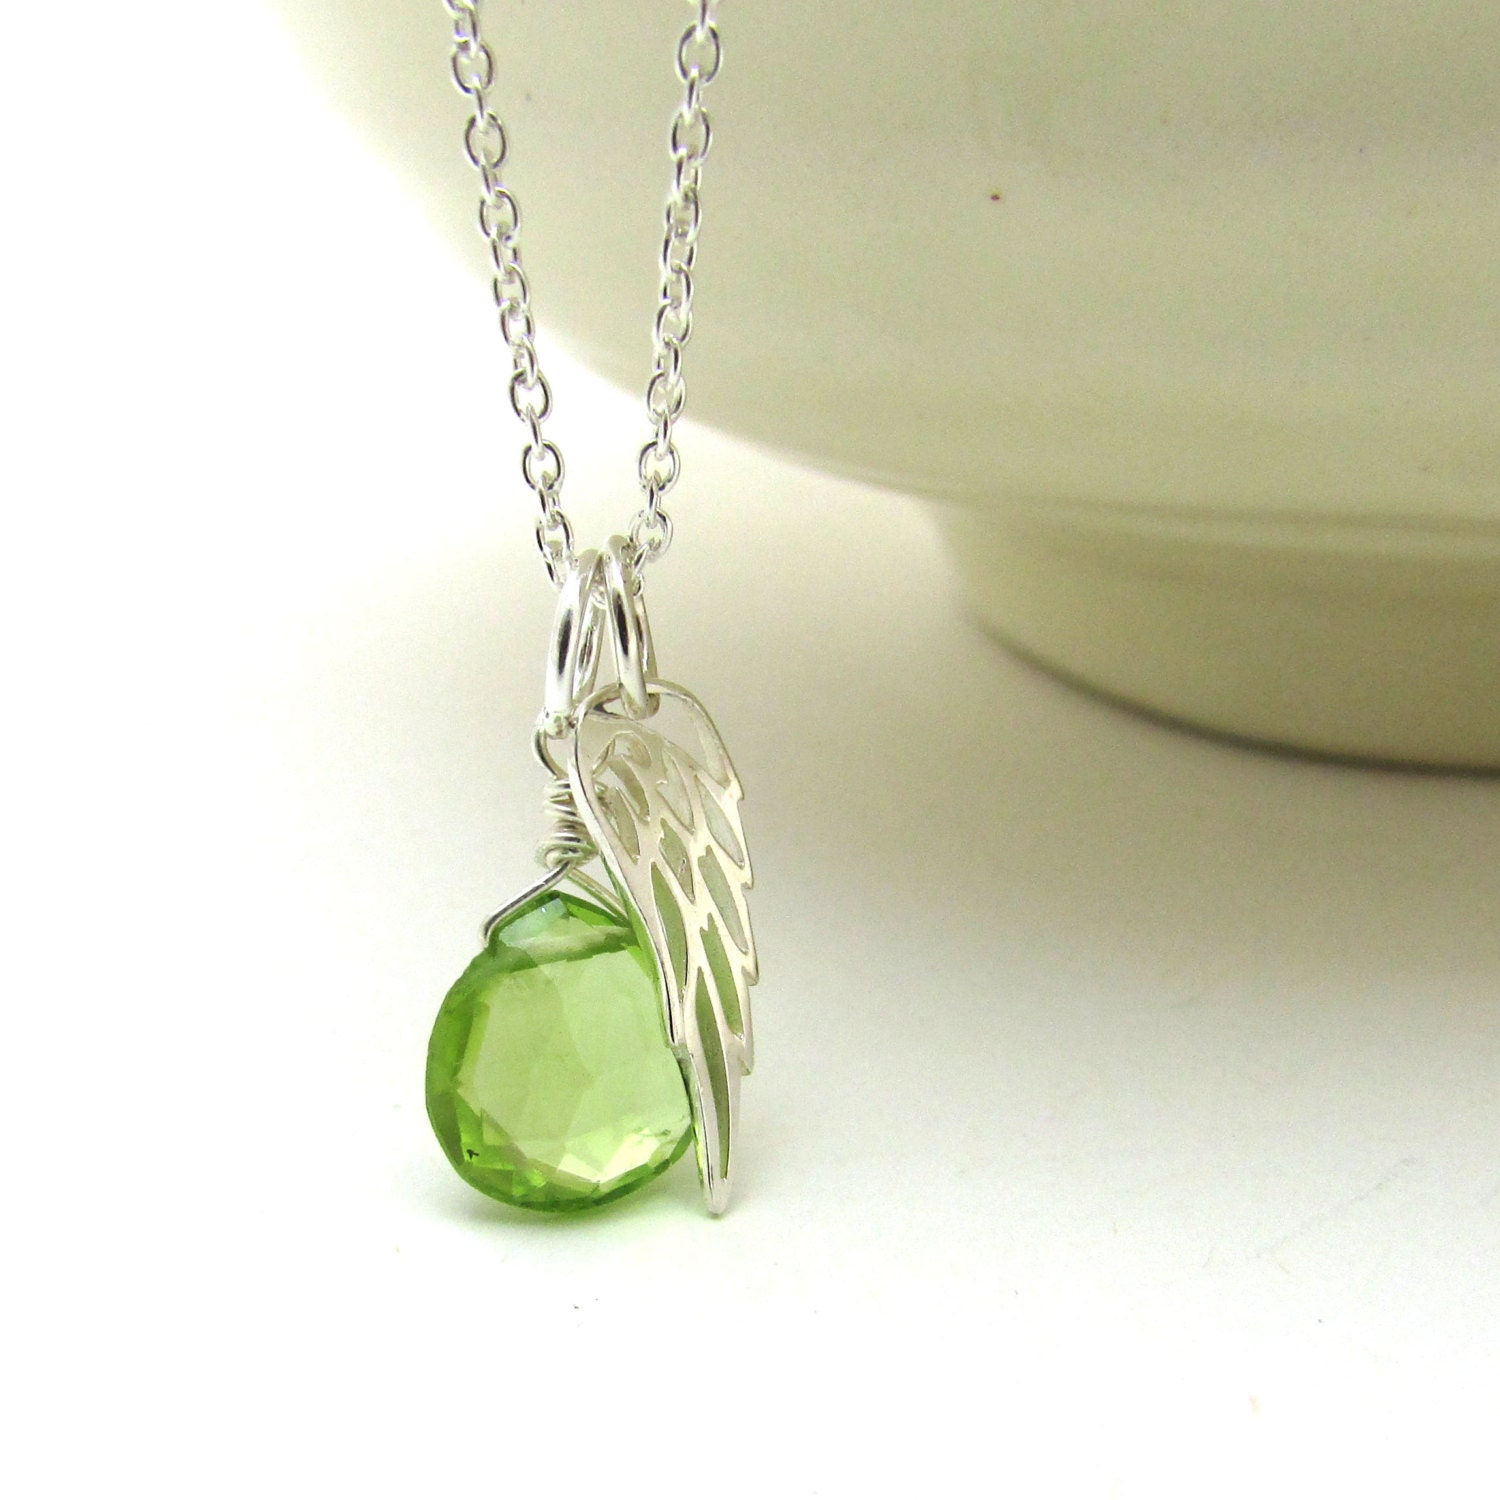 peridot necklace pendant august birthstone shaped beautiful index heart